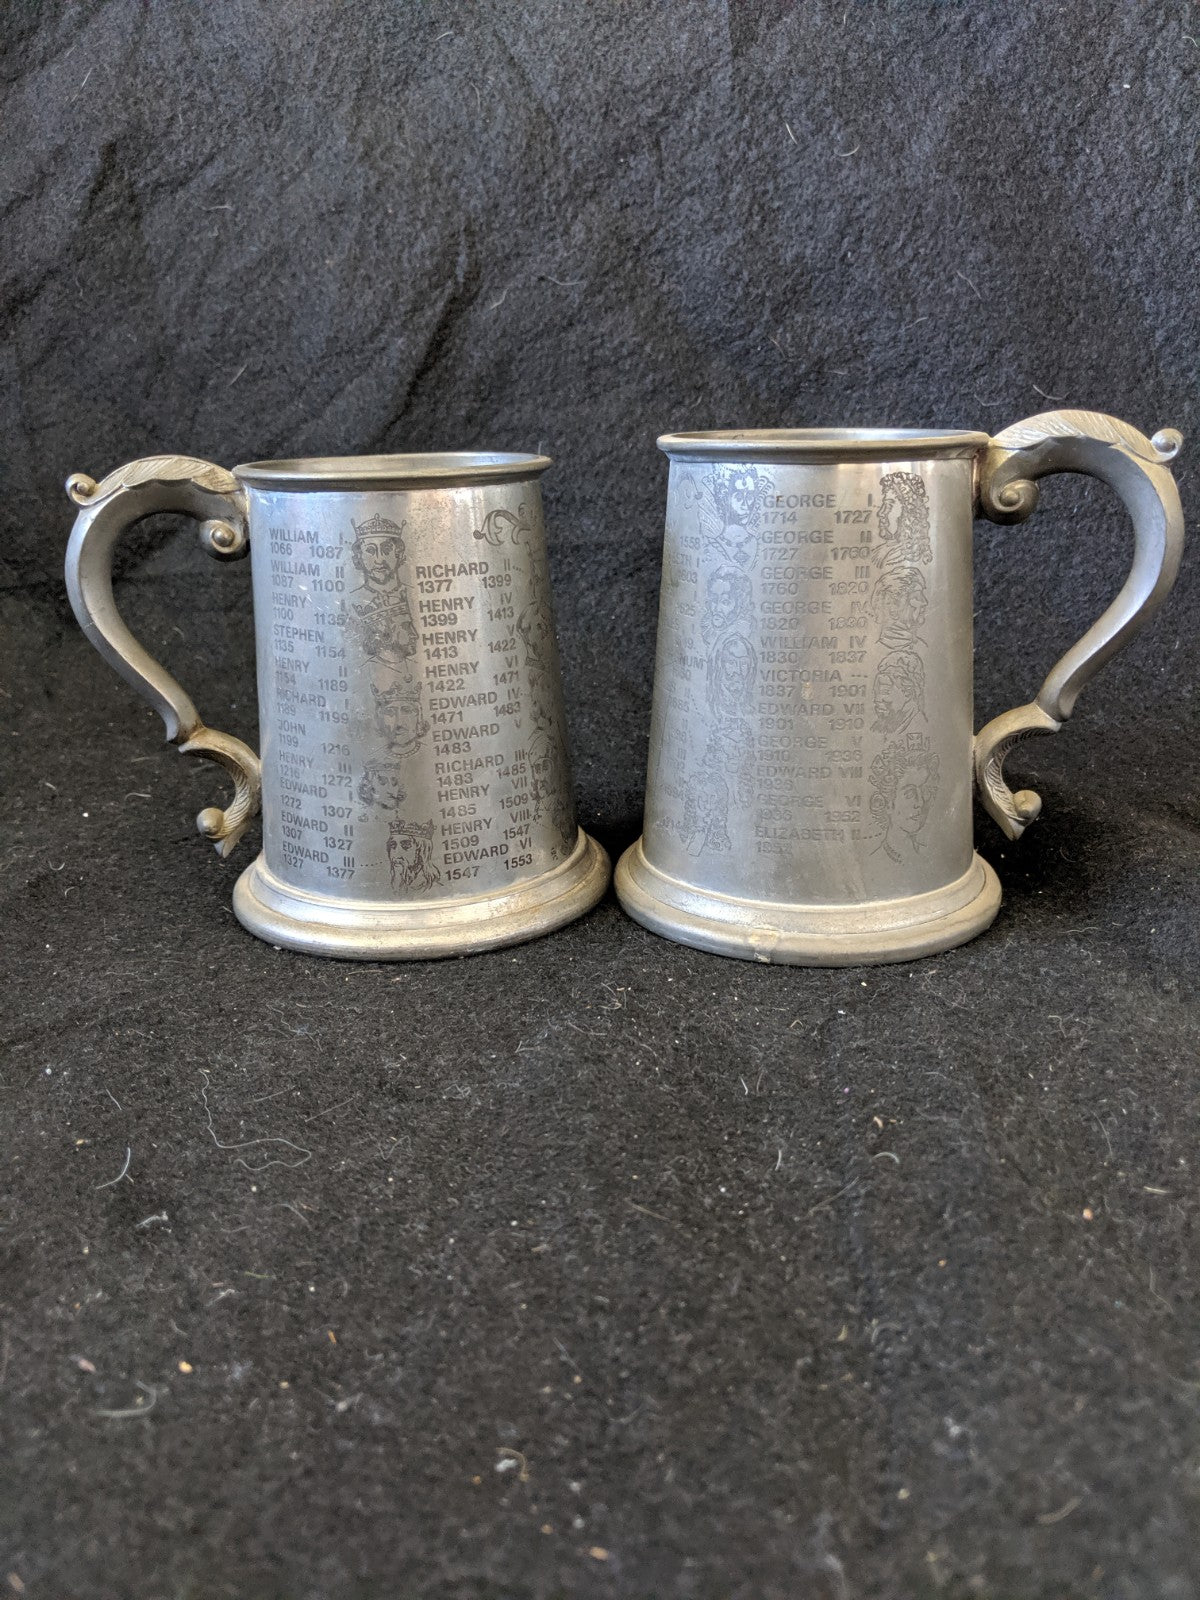 Englishg Pewter Tankards, engraved with Royalty from 1066 to present, pair